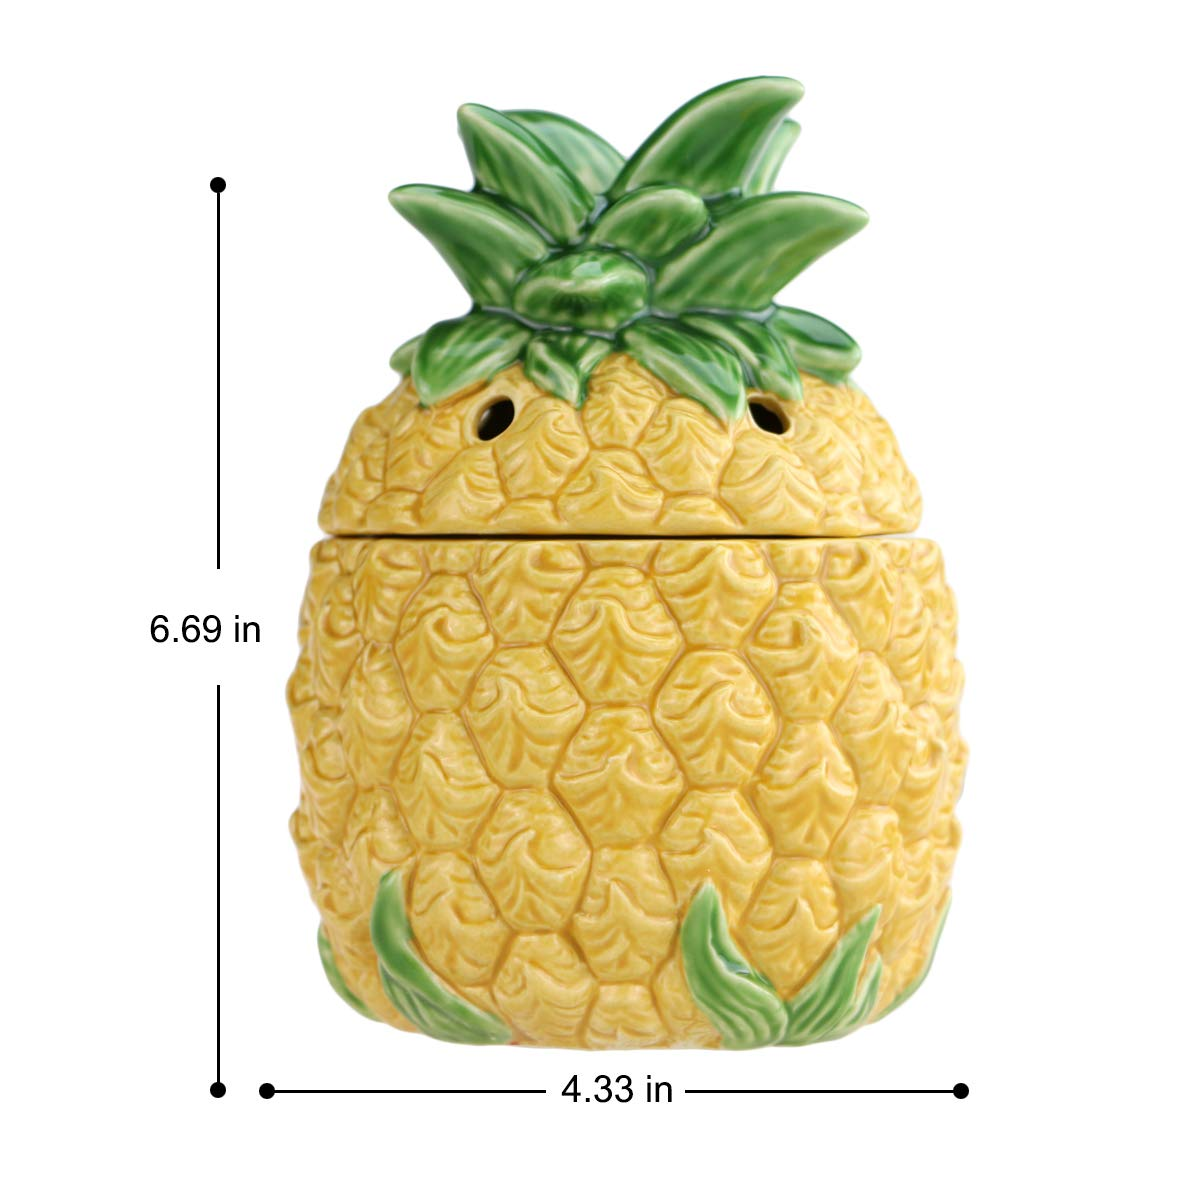 STAR MOON Wax Melt Warmer Electric, Candle Warmer for Wax Melt, Home Fragrance Diffuser, Home Décor, No Flame, with Ceramic Warming Plate (Pineapple) by STAR MOON (Image #6)